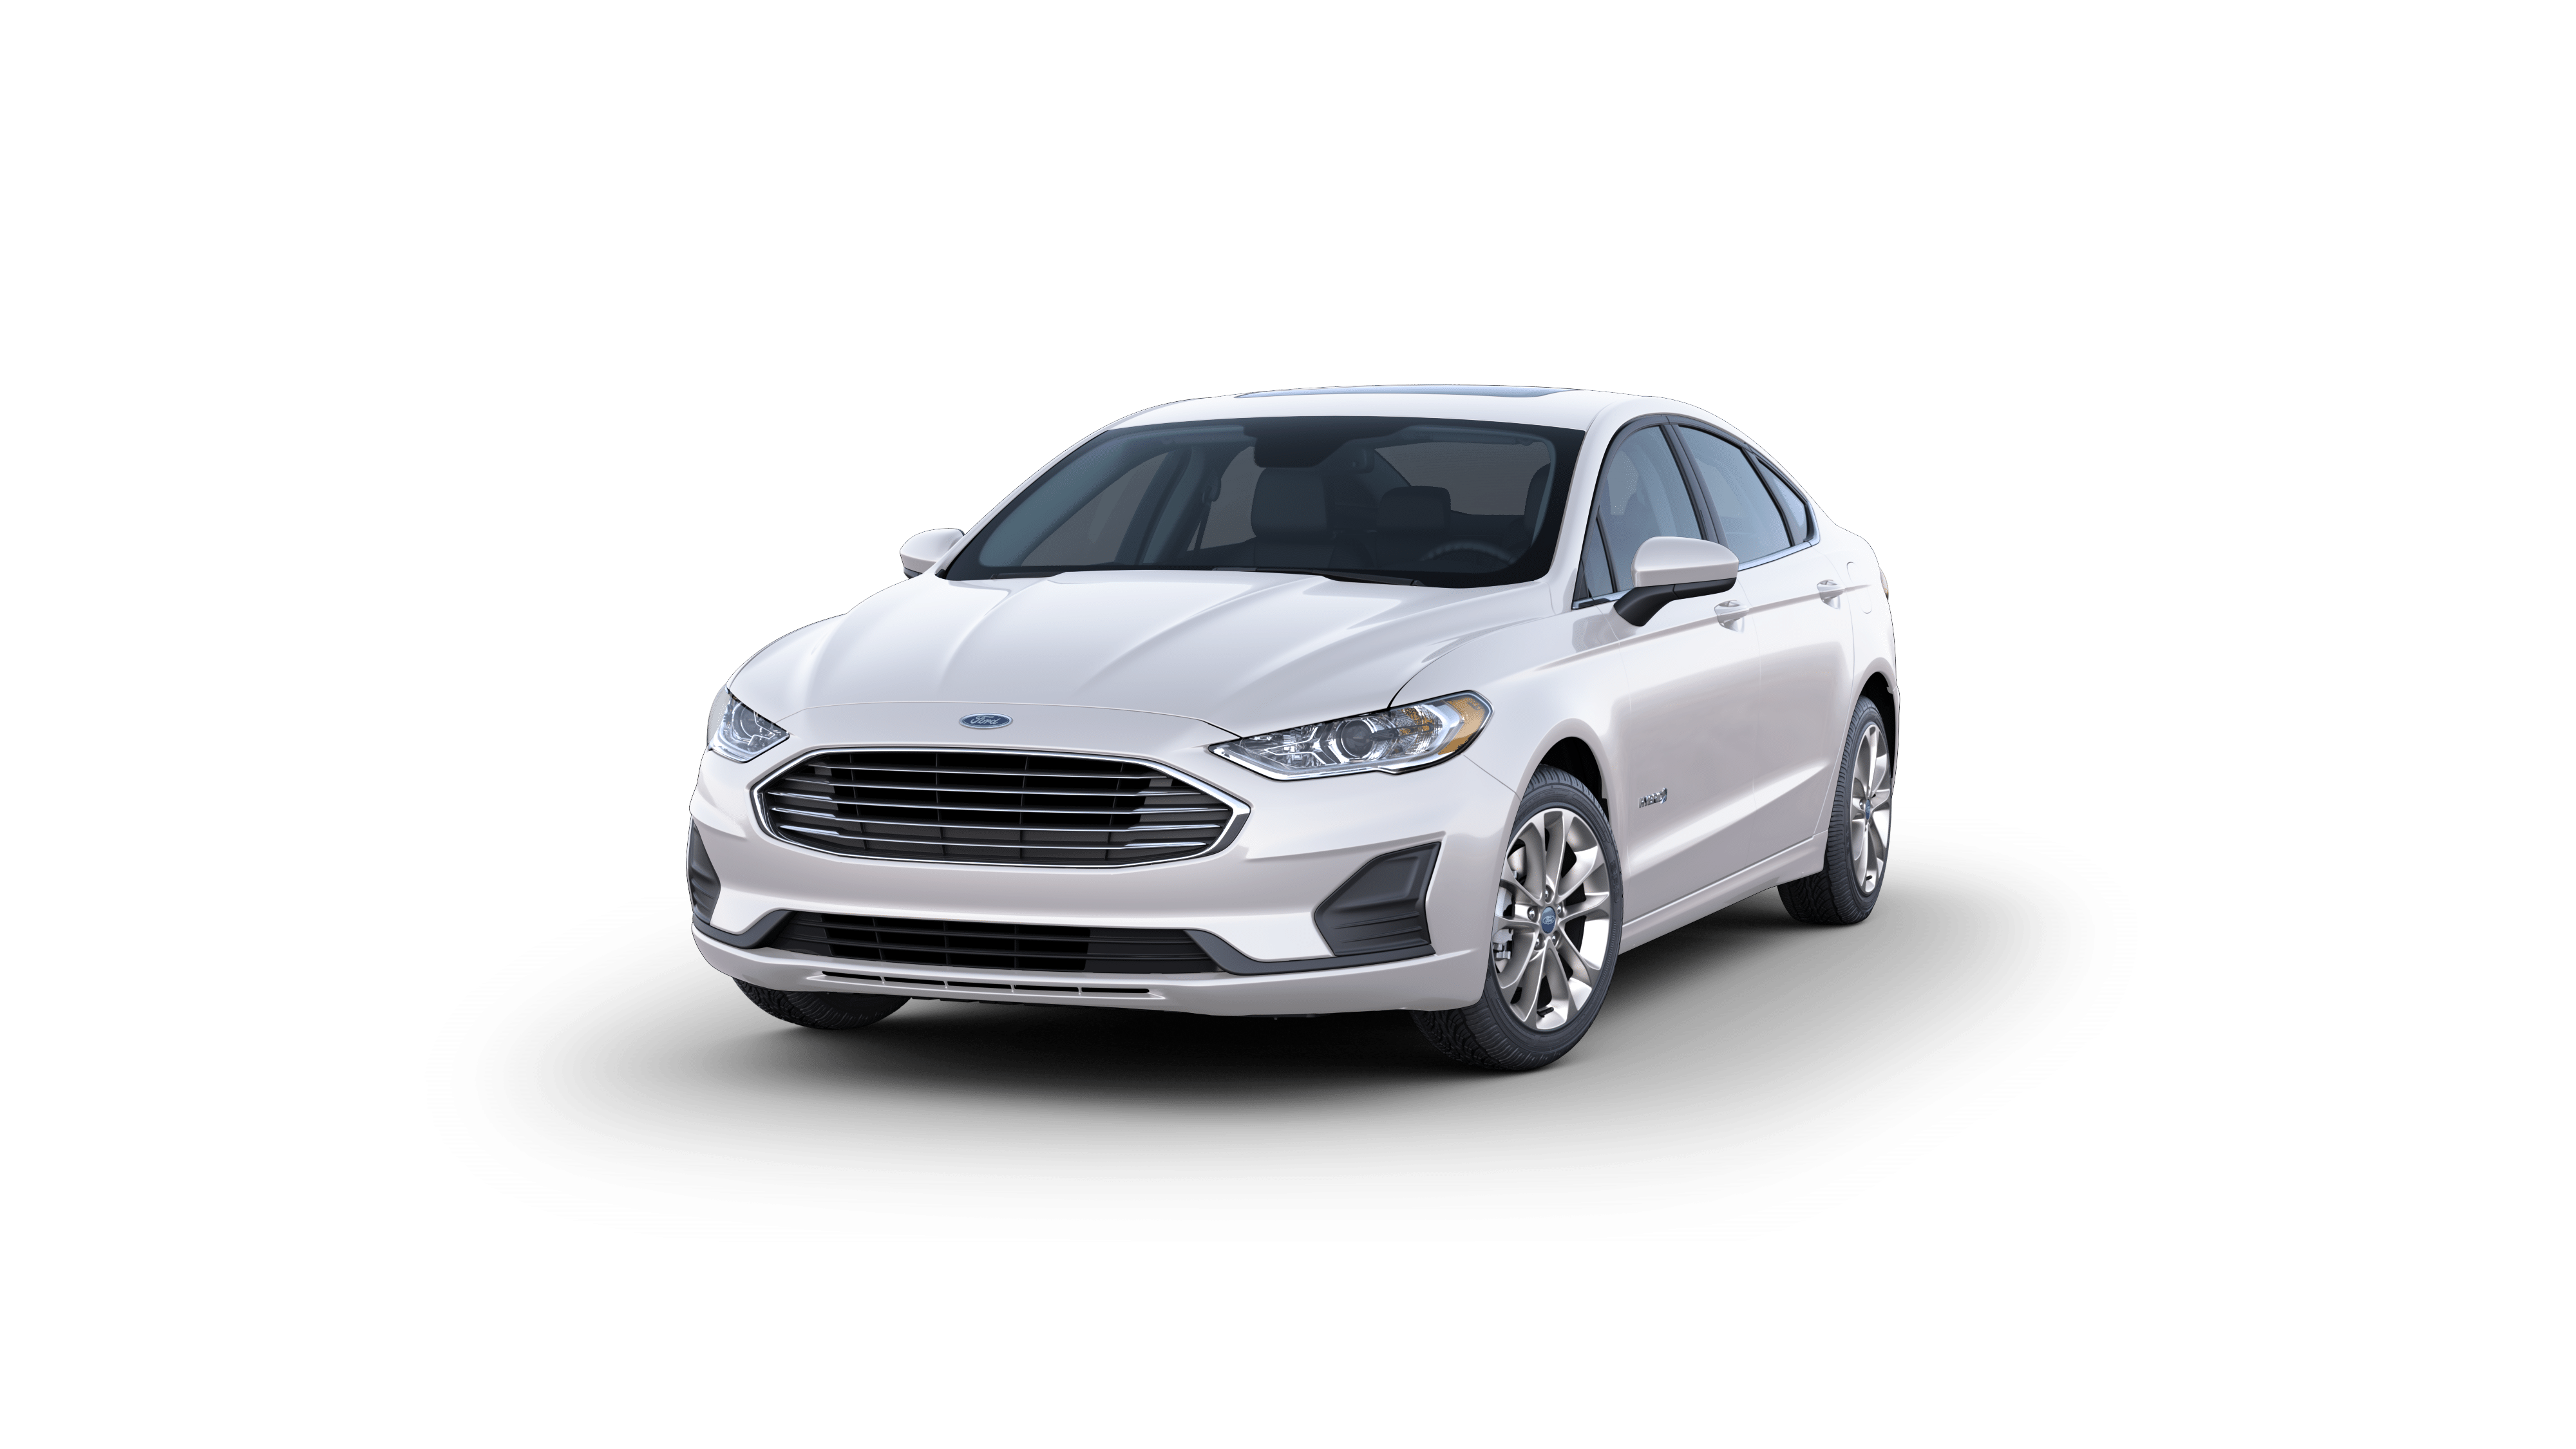 2019 Ford Fusion Hybrid for sale in Natrona Heights - 3FA6P0LU2KR130004 -  Cochran Ford